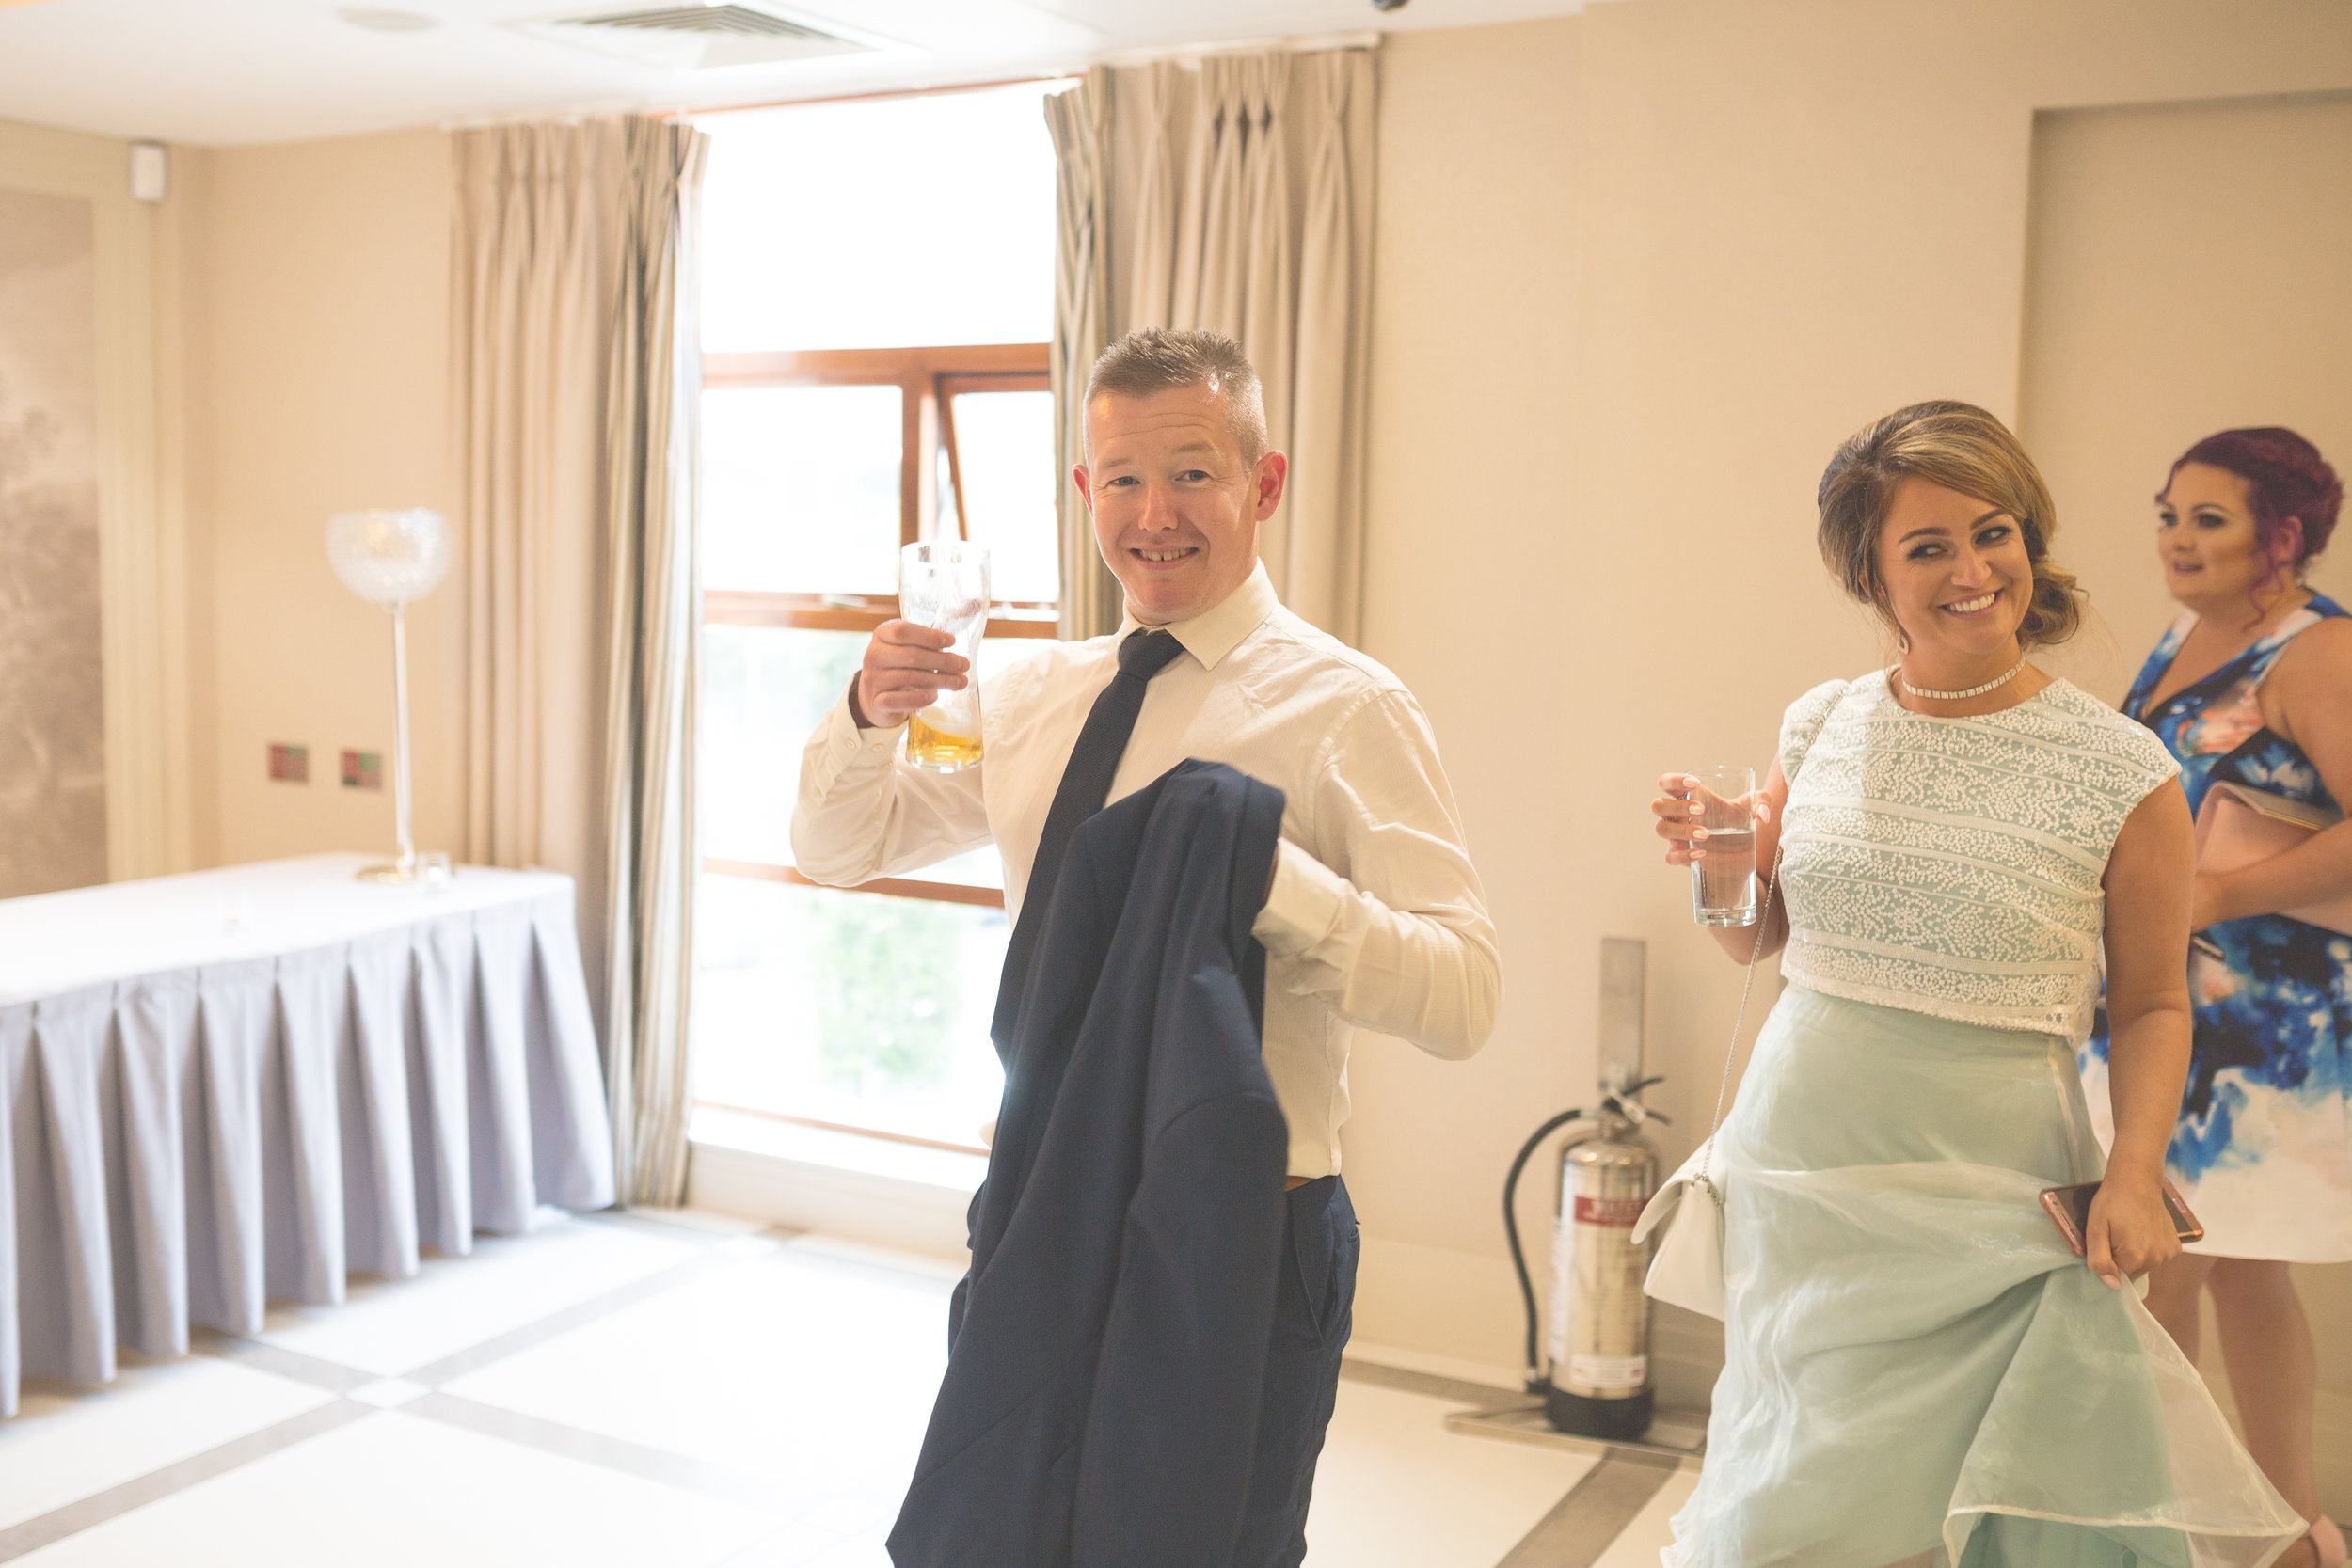 Antoinette & Stephen - Speeches | Brian McEwan Photography | Wedding Photographer Northern Ireland 121.jpg